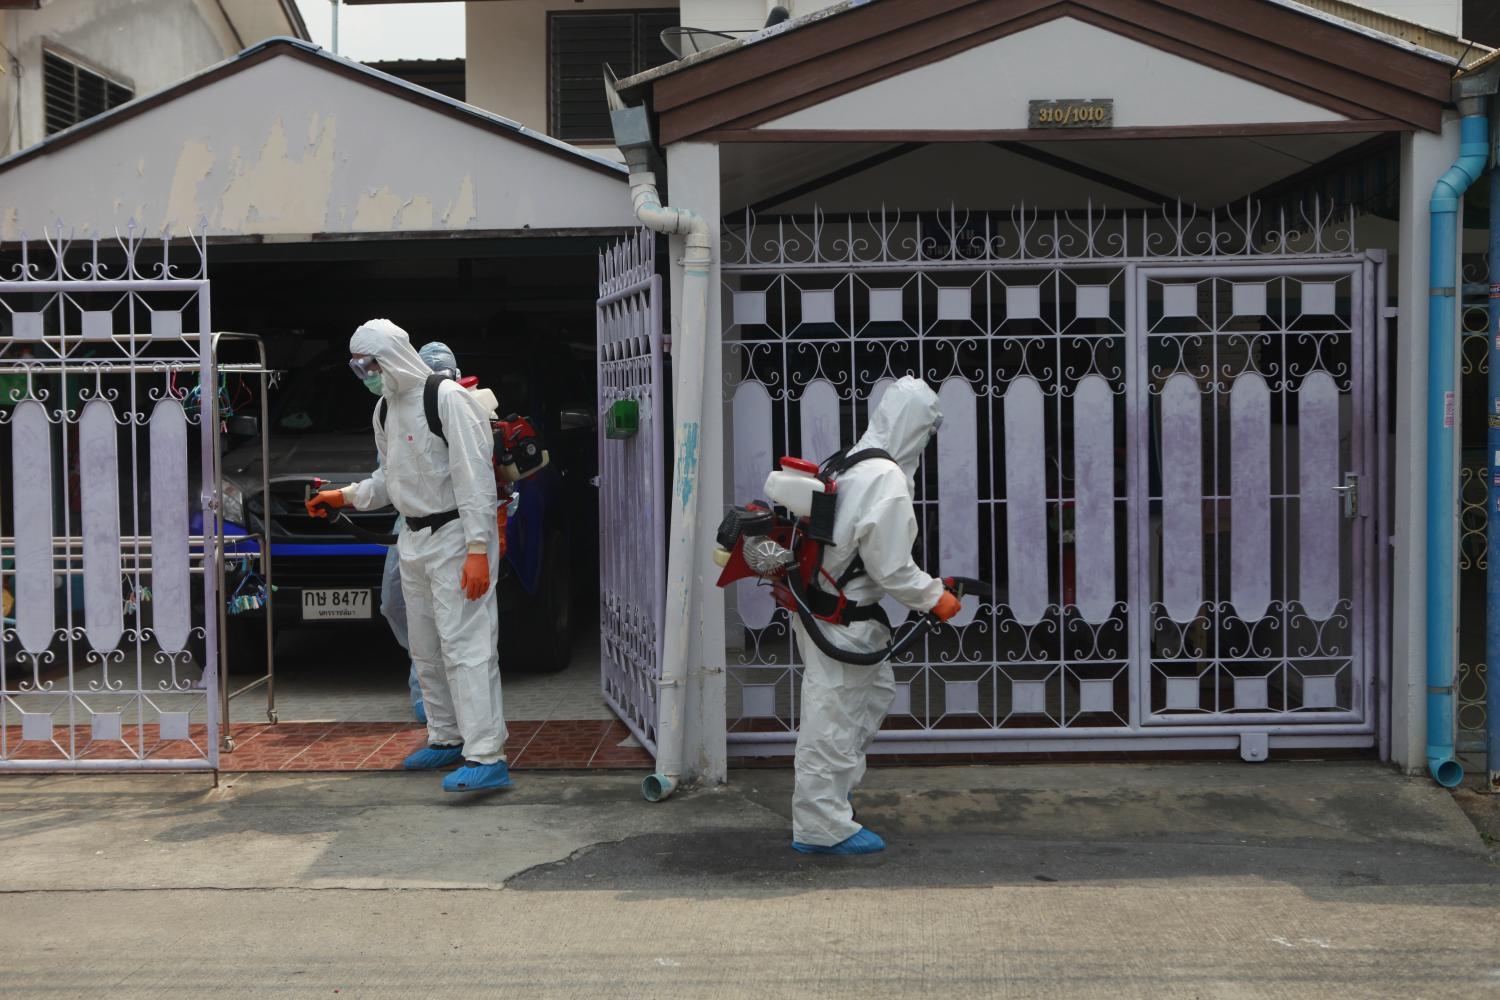 Workers from Don Muang district office disinfect the house of an elderly couple and their eight-year-old grandson who tested positive for Covid-19 after returning from a trip to Hokkaido, Japan. (Photo by Nutthawat Wicheanbut)